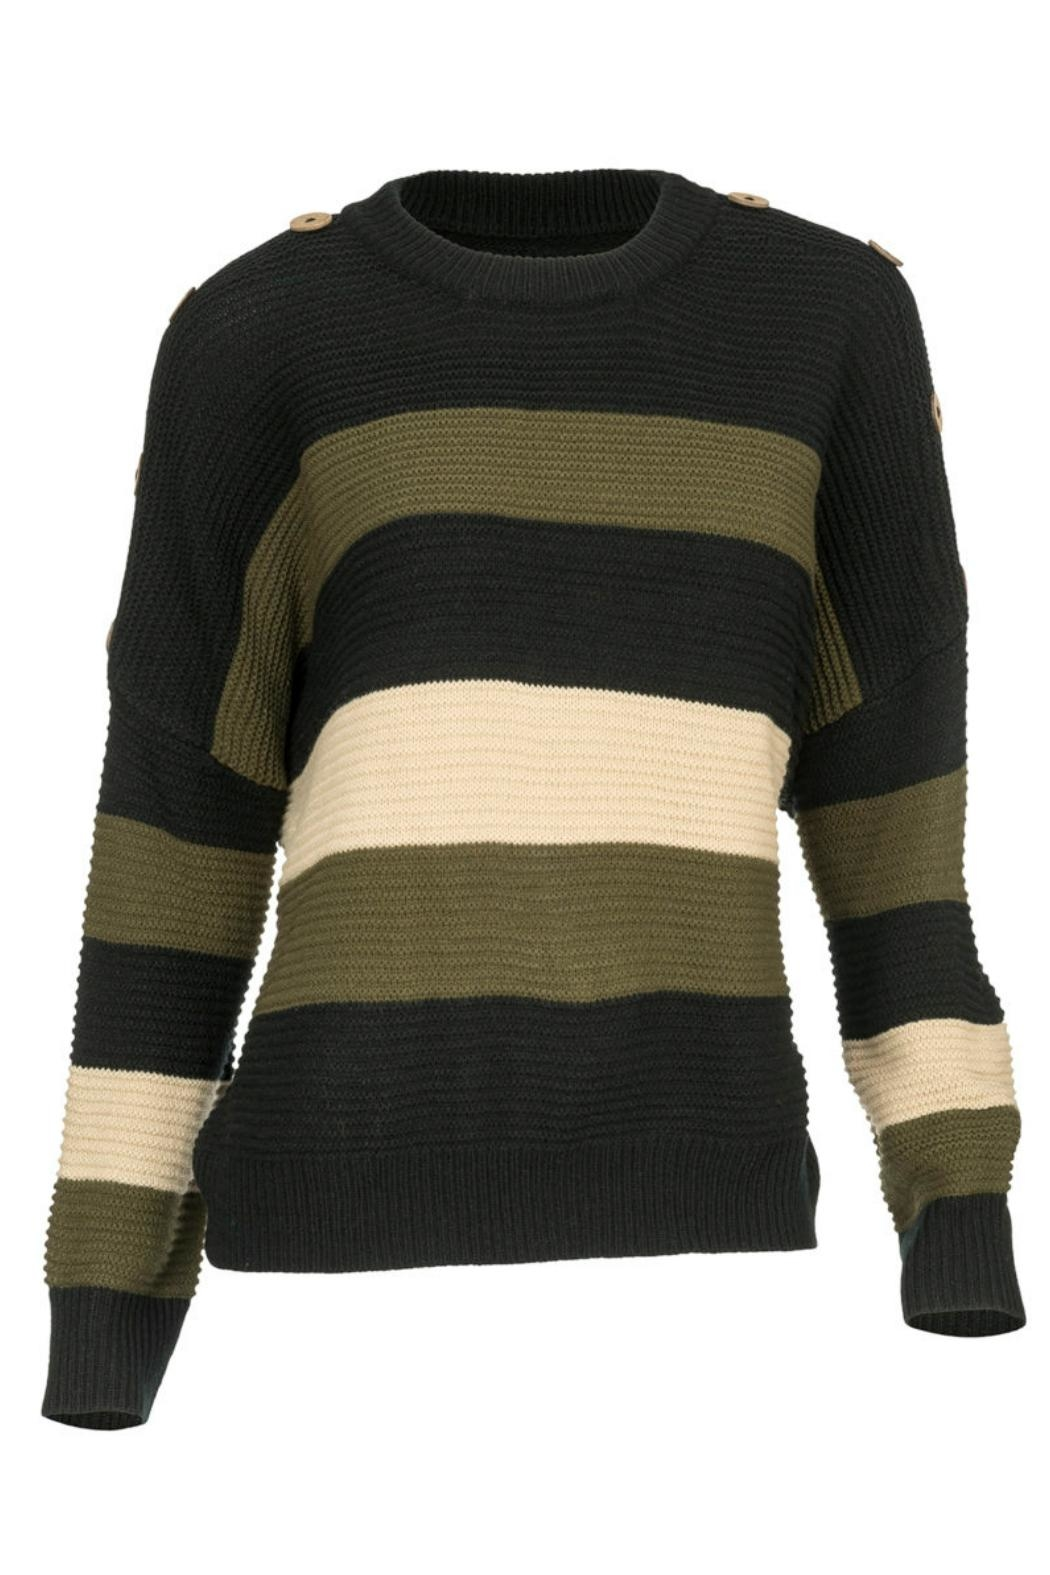 Arianna Button-Accent Pullover Sweater - Main Image